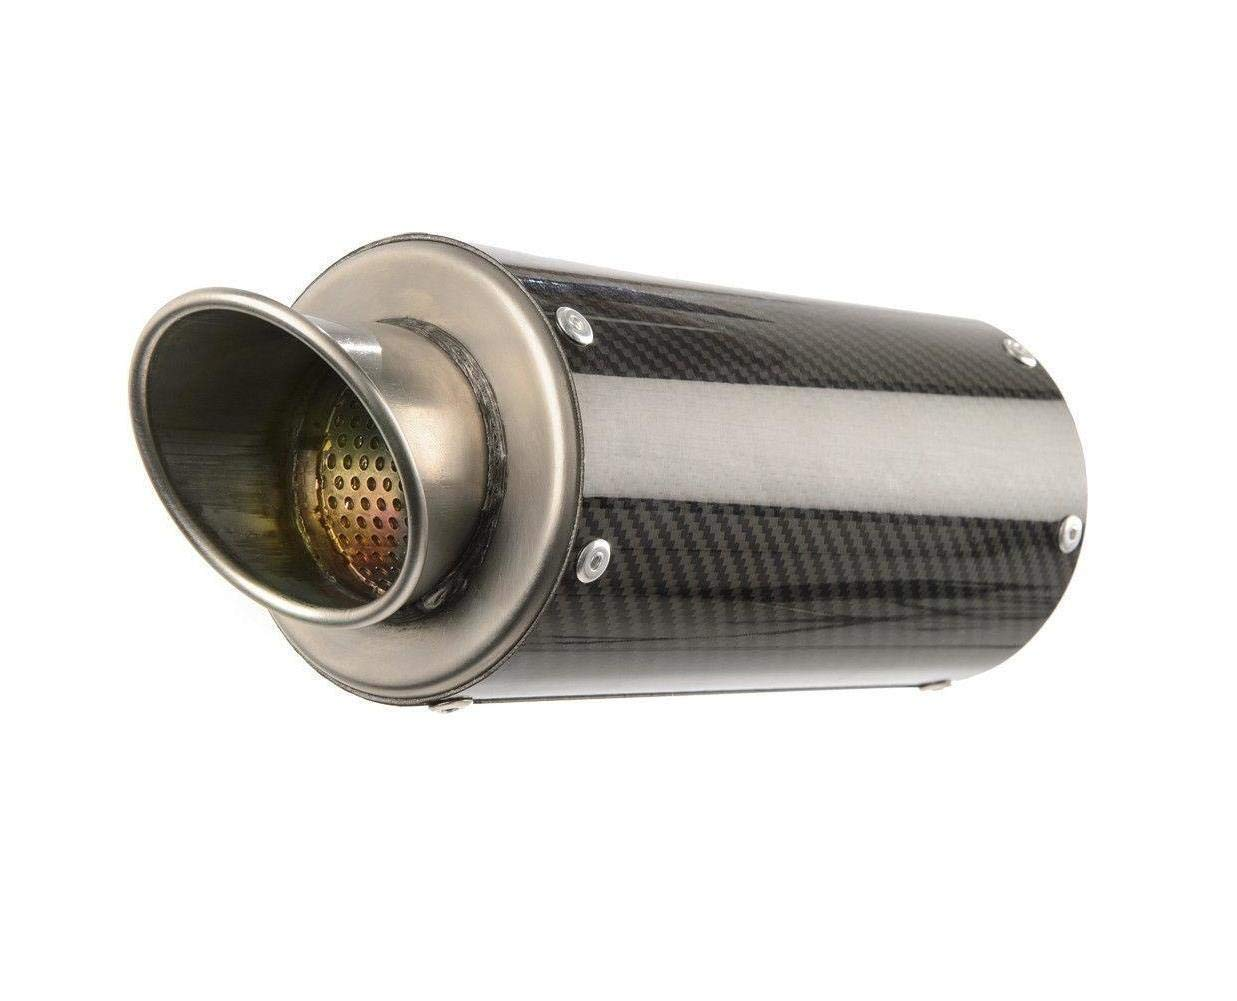 Hotbodies Racing 17-18 BMW S1000RR MGP Growler Slip-On Exhaust (Carbon Fiber with Rolled Tip)